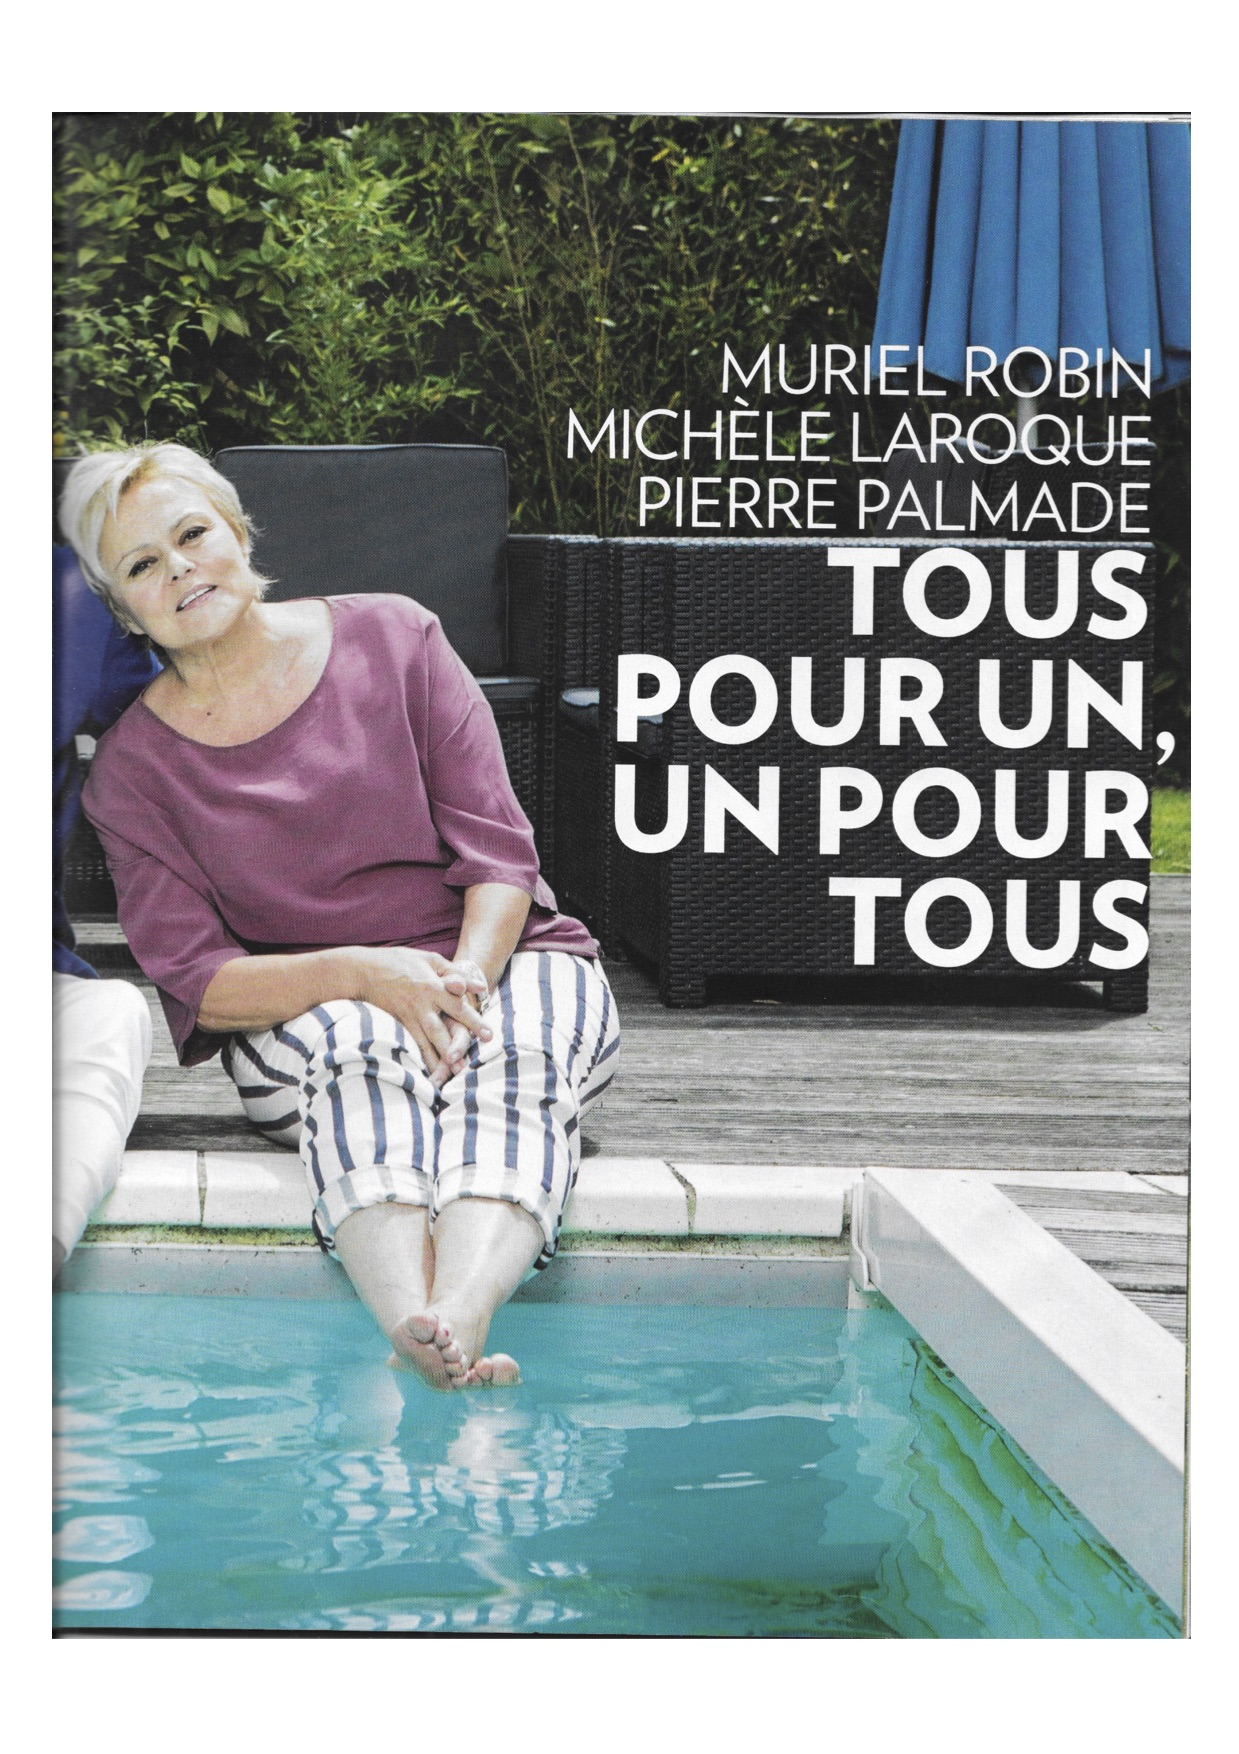 Paris Match 23.06.16 p3